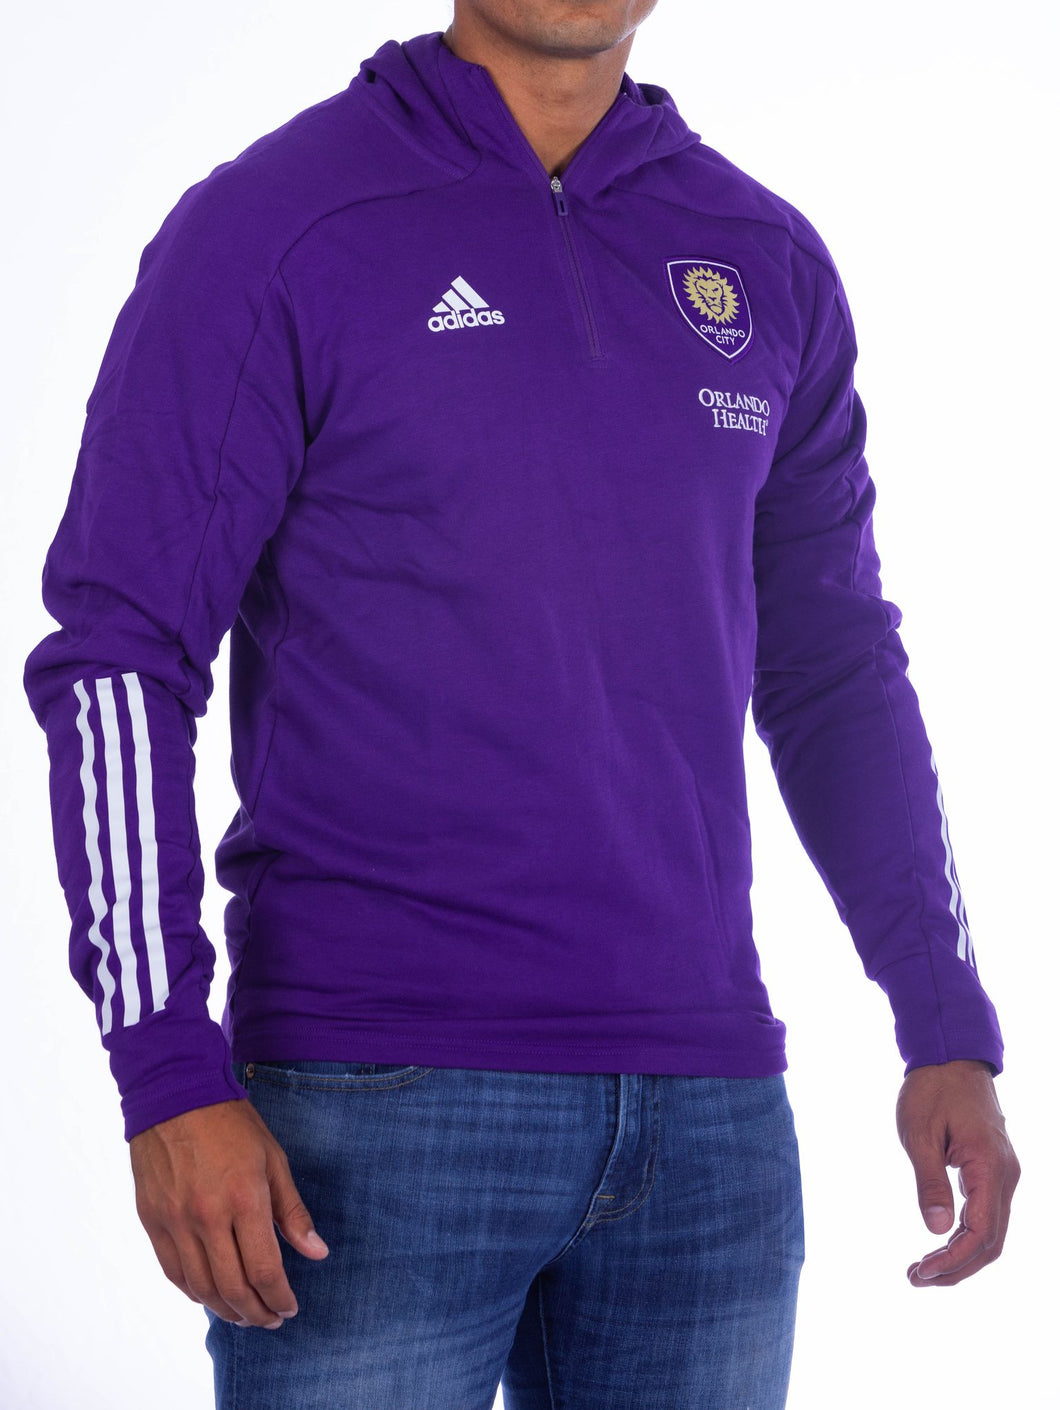 Adidas Travel Jacket - Purple